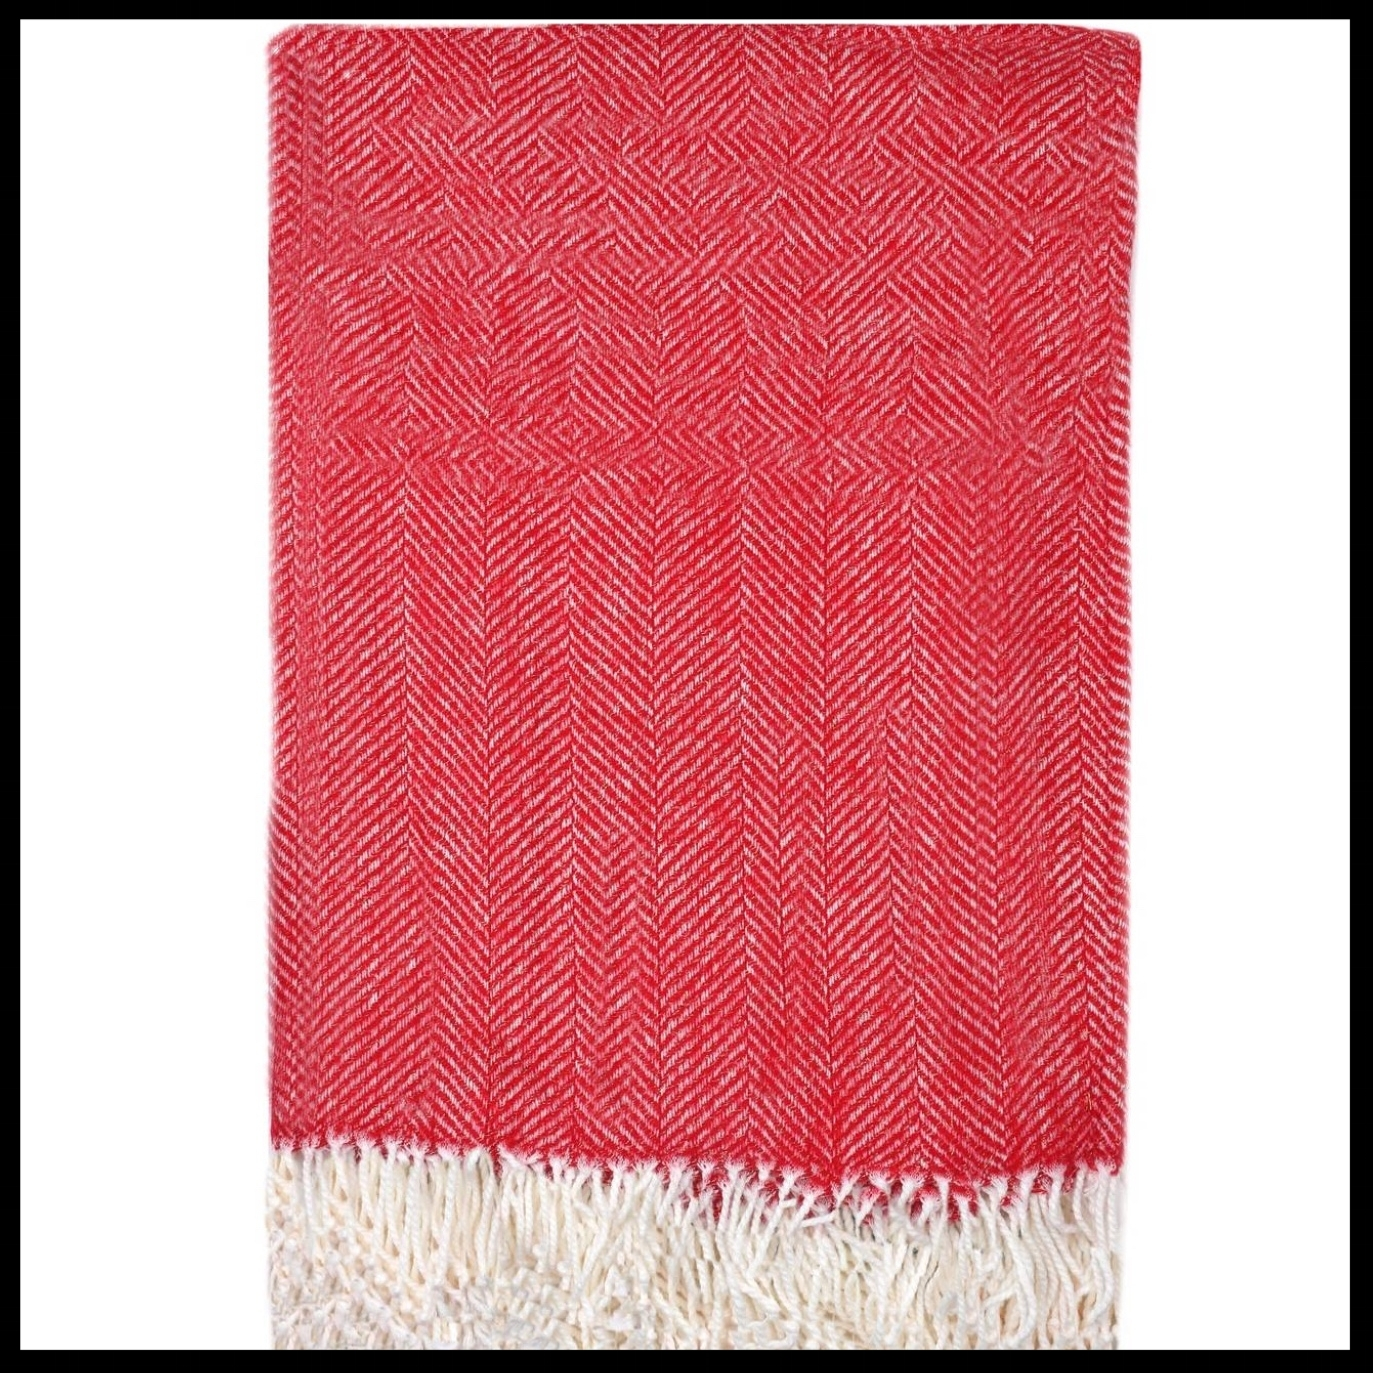 Herringbone Throw Blanket Threshold™ - $18.99 - The masculine herringbone weave pattern and festive red hue make this throw a great gift for even the manliest of men. Did I forget to mention that it's easy to care for? This throw blanket is totally machine washable.